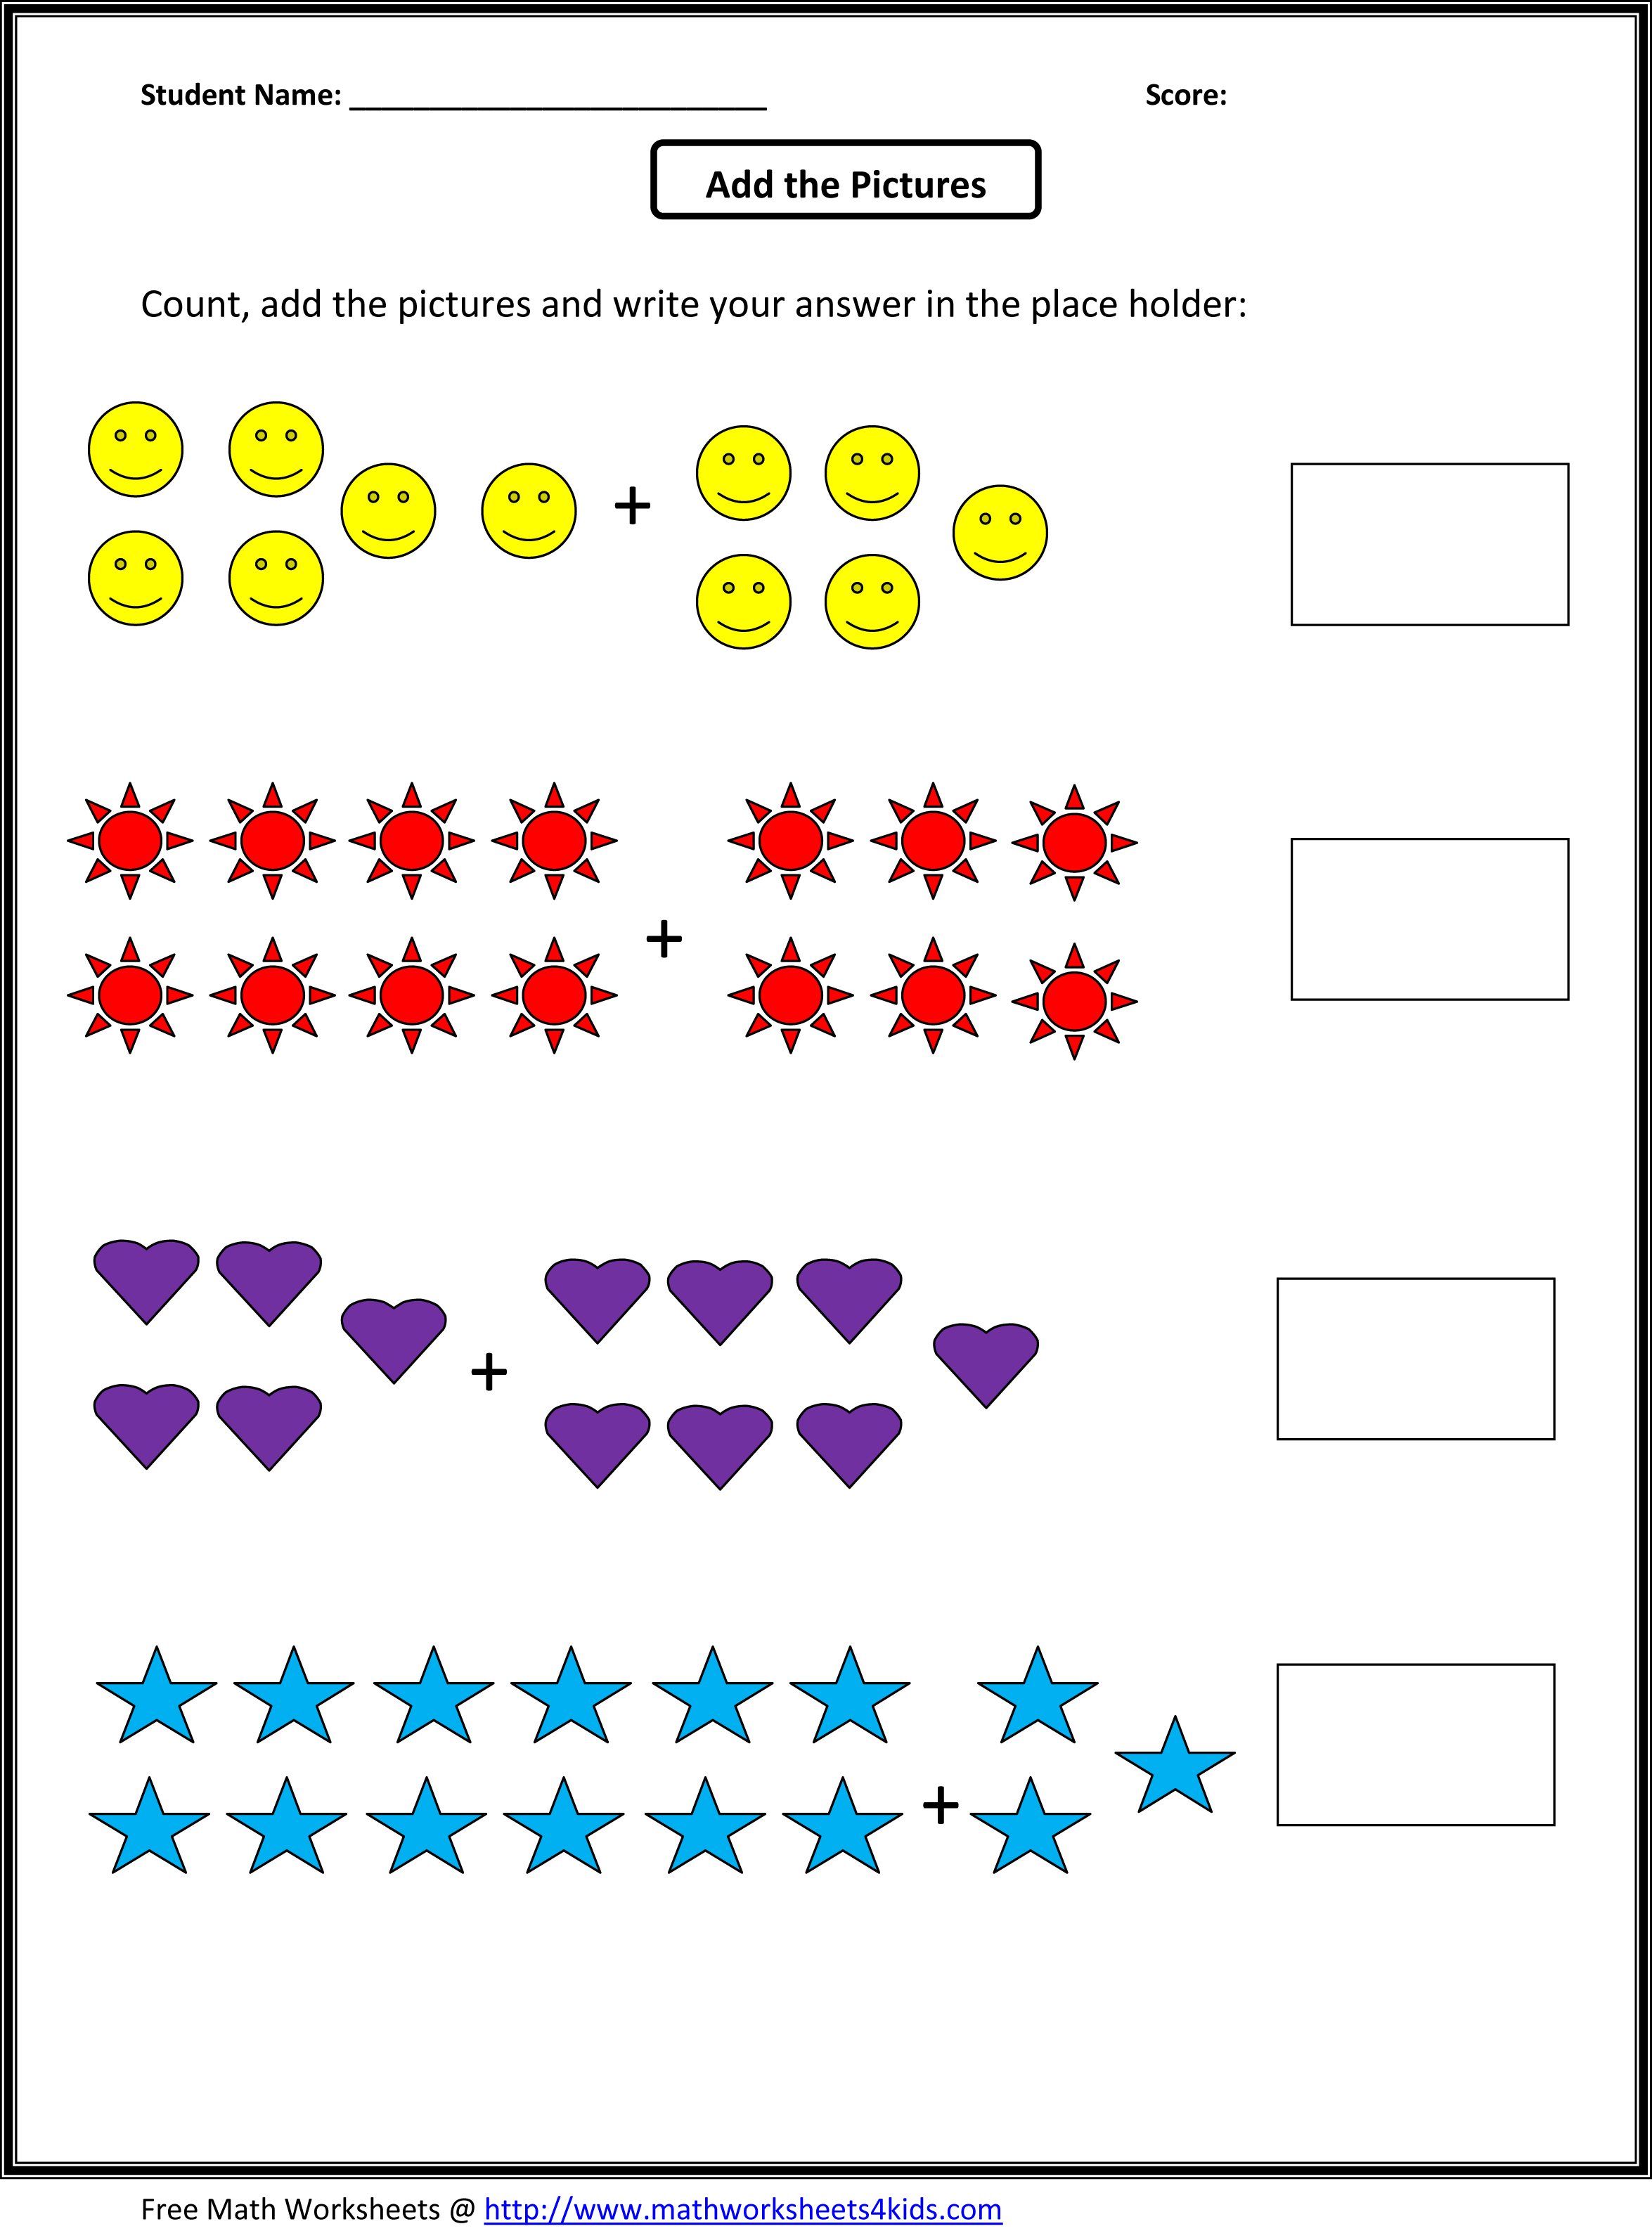 Weirdmailus  Pretty Grade  Maths Worksheet  Reocurent With Lovable Math Worksheets For St Grade Free  Reocurent With Cool Dave Ramsey Worksheets Also Relative Ages Of Rocks Worksheet Answers In Addition Decay Practice Worksheet  And Sentence Fragment Worksheet As Well As Star Wars Worksheets Additionally Net Ionic Equations Worksheet From Reocurentcom With Weirdmailus  Lovable Grade  Maths Worksheet  Reocurent With Cool Math Worksheets For St Grade Free  Reocurent And Pretty Dave Ramsey Worksheets Also Relative Ages Of Rocks Worksheet Answers In Addition Decay Practice Worksheet  From Reocurentcom